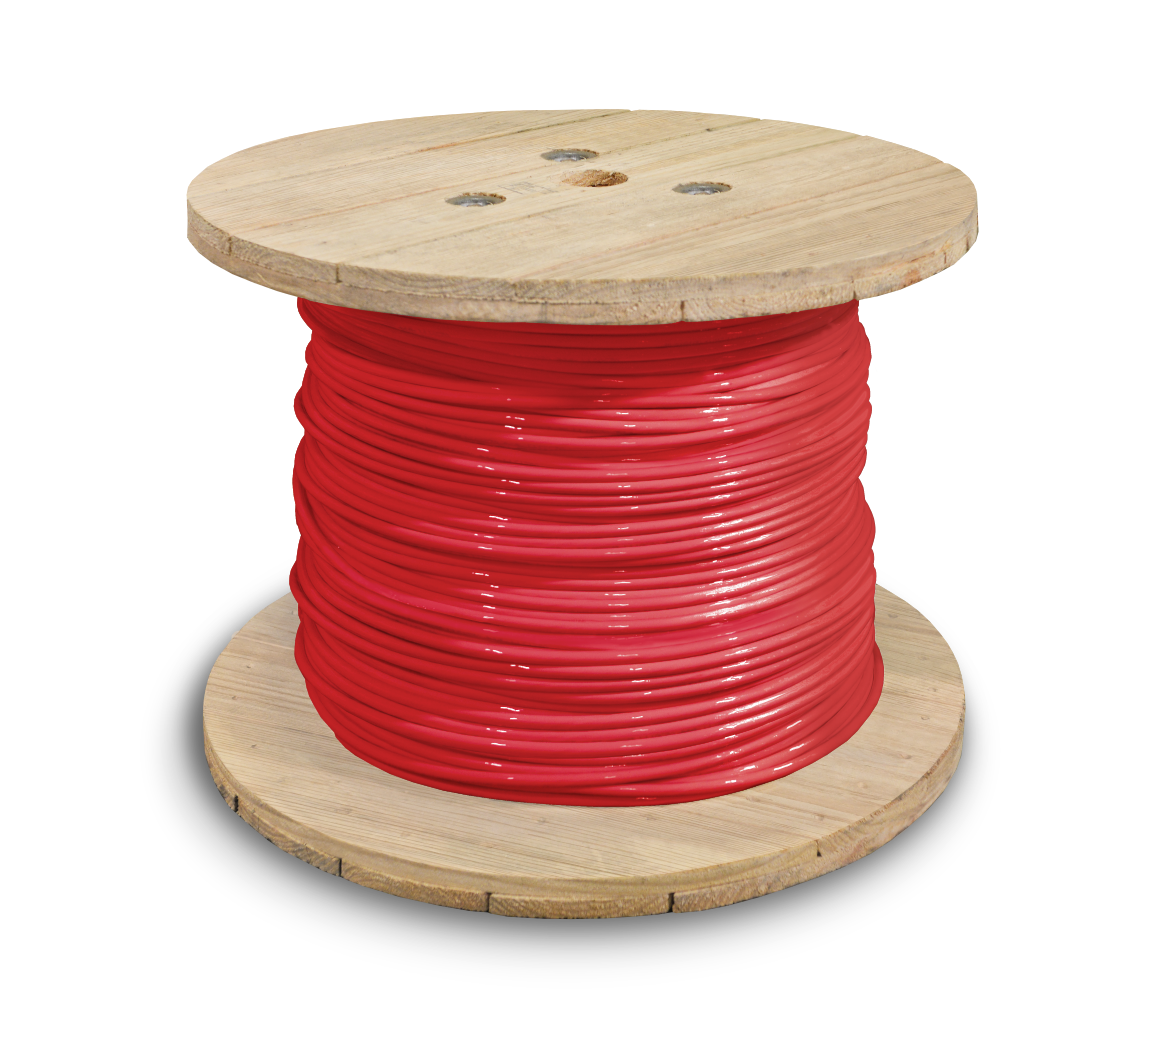 496001_THHN_1awg_2500ft_Red